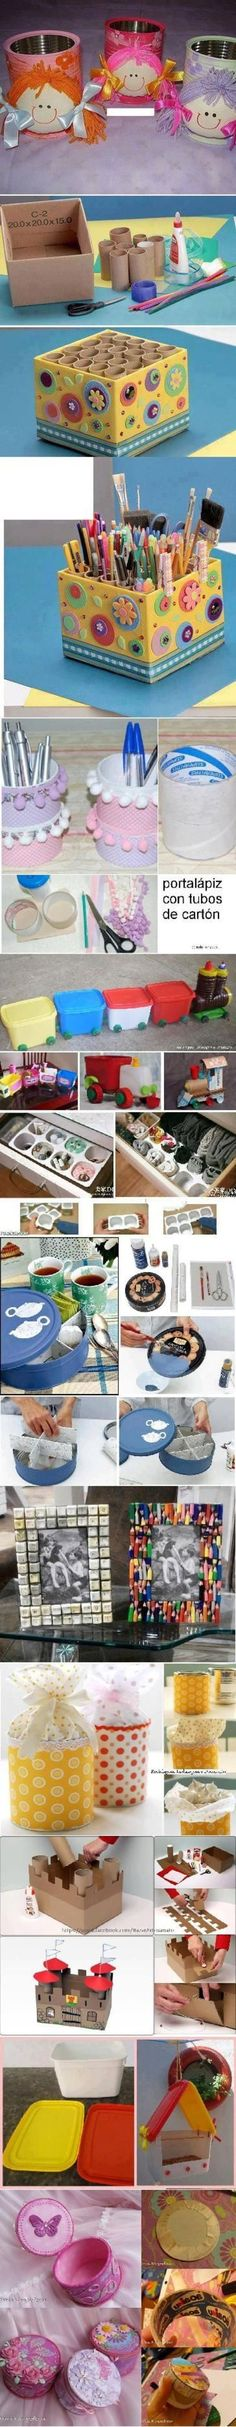 Looking for a fun and easy diy craft project for little or no money? We have the easiest craft ideas for you to try with things that are just sitting around your house. Turn them into a fun craft project with these diy image tutorials. Kids Crafts, Easy Diy Crafts, Recycled Crafts, Crafts To Do, Projects For Kids, Diy For Kids, Craft Projects, Arts And Crafts, Craft Ideas